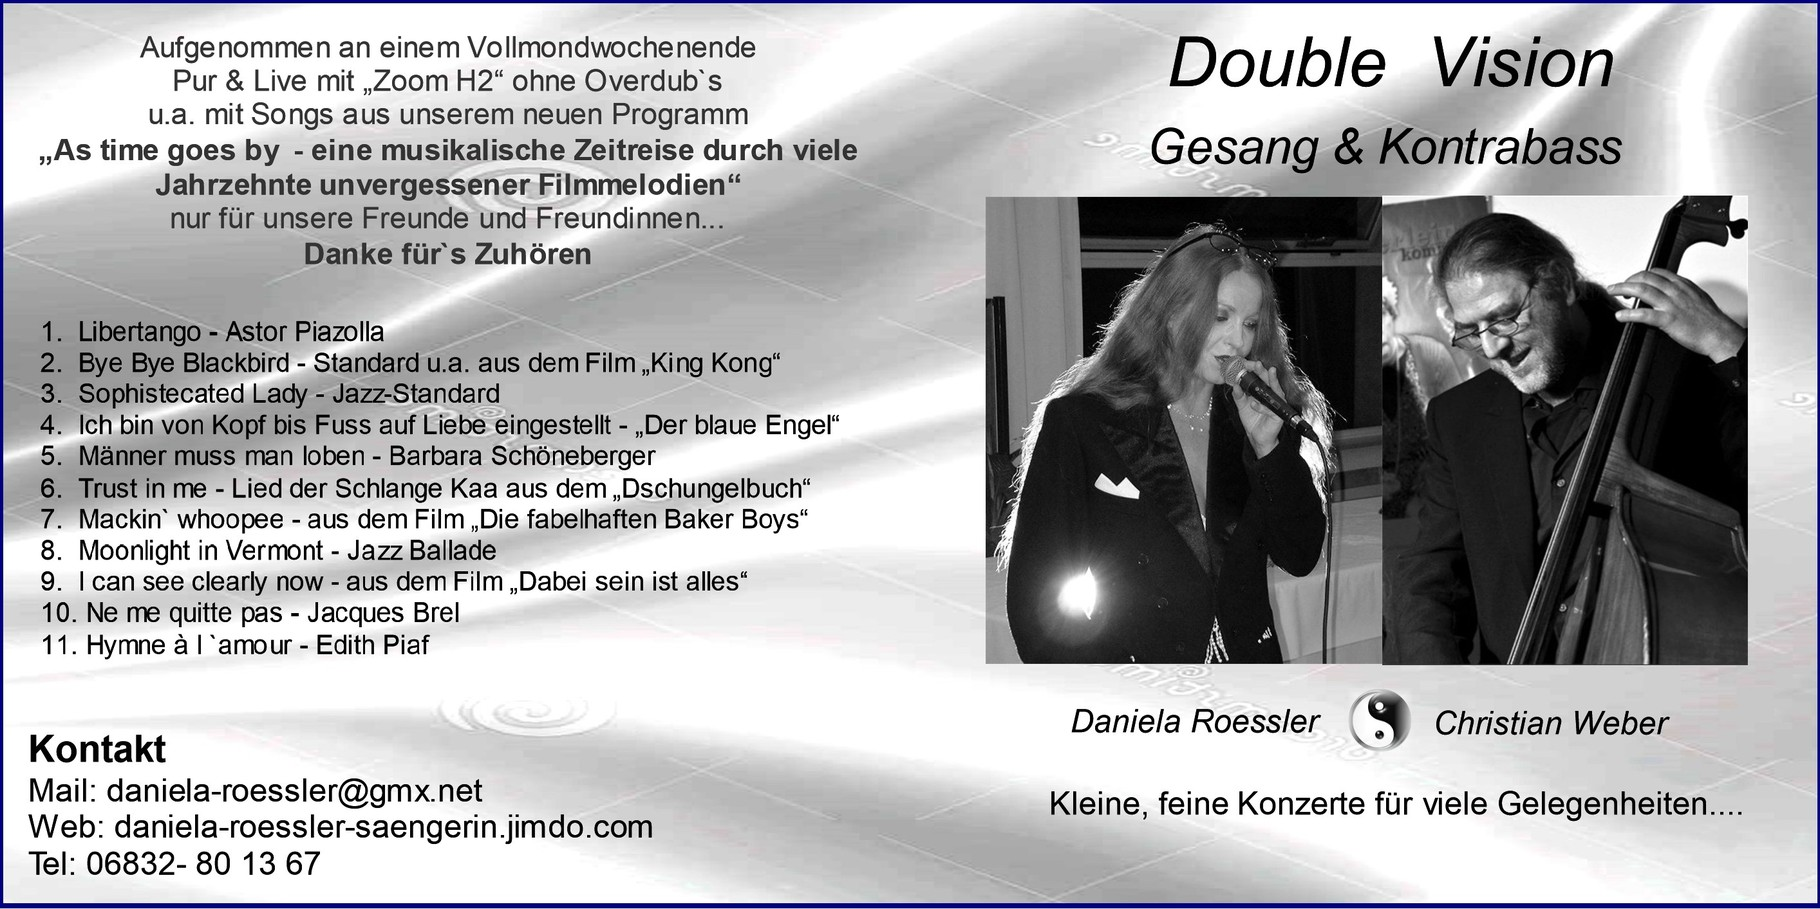 Double Vision - Kontrabass & Gesang